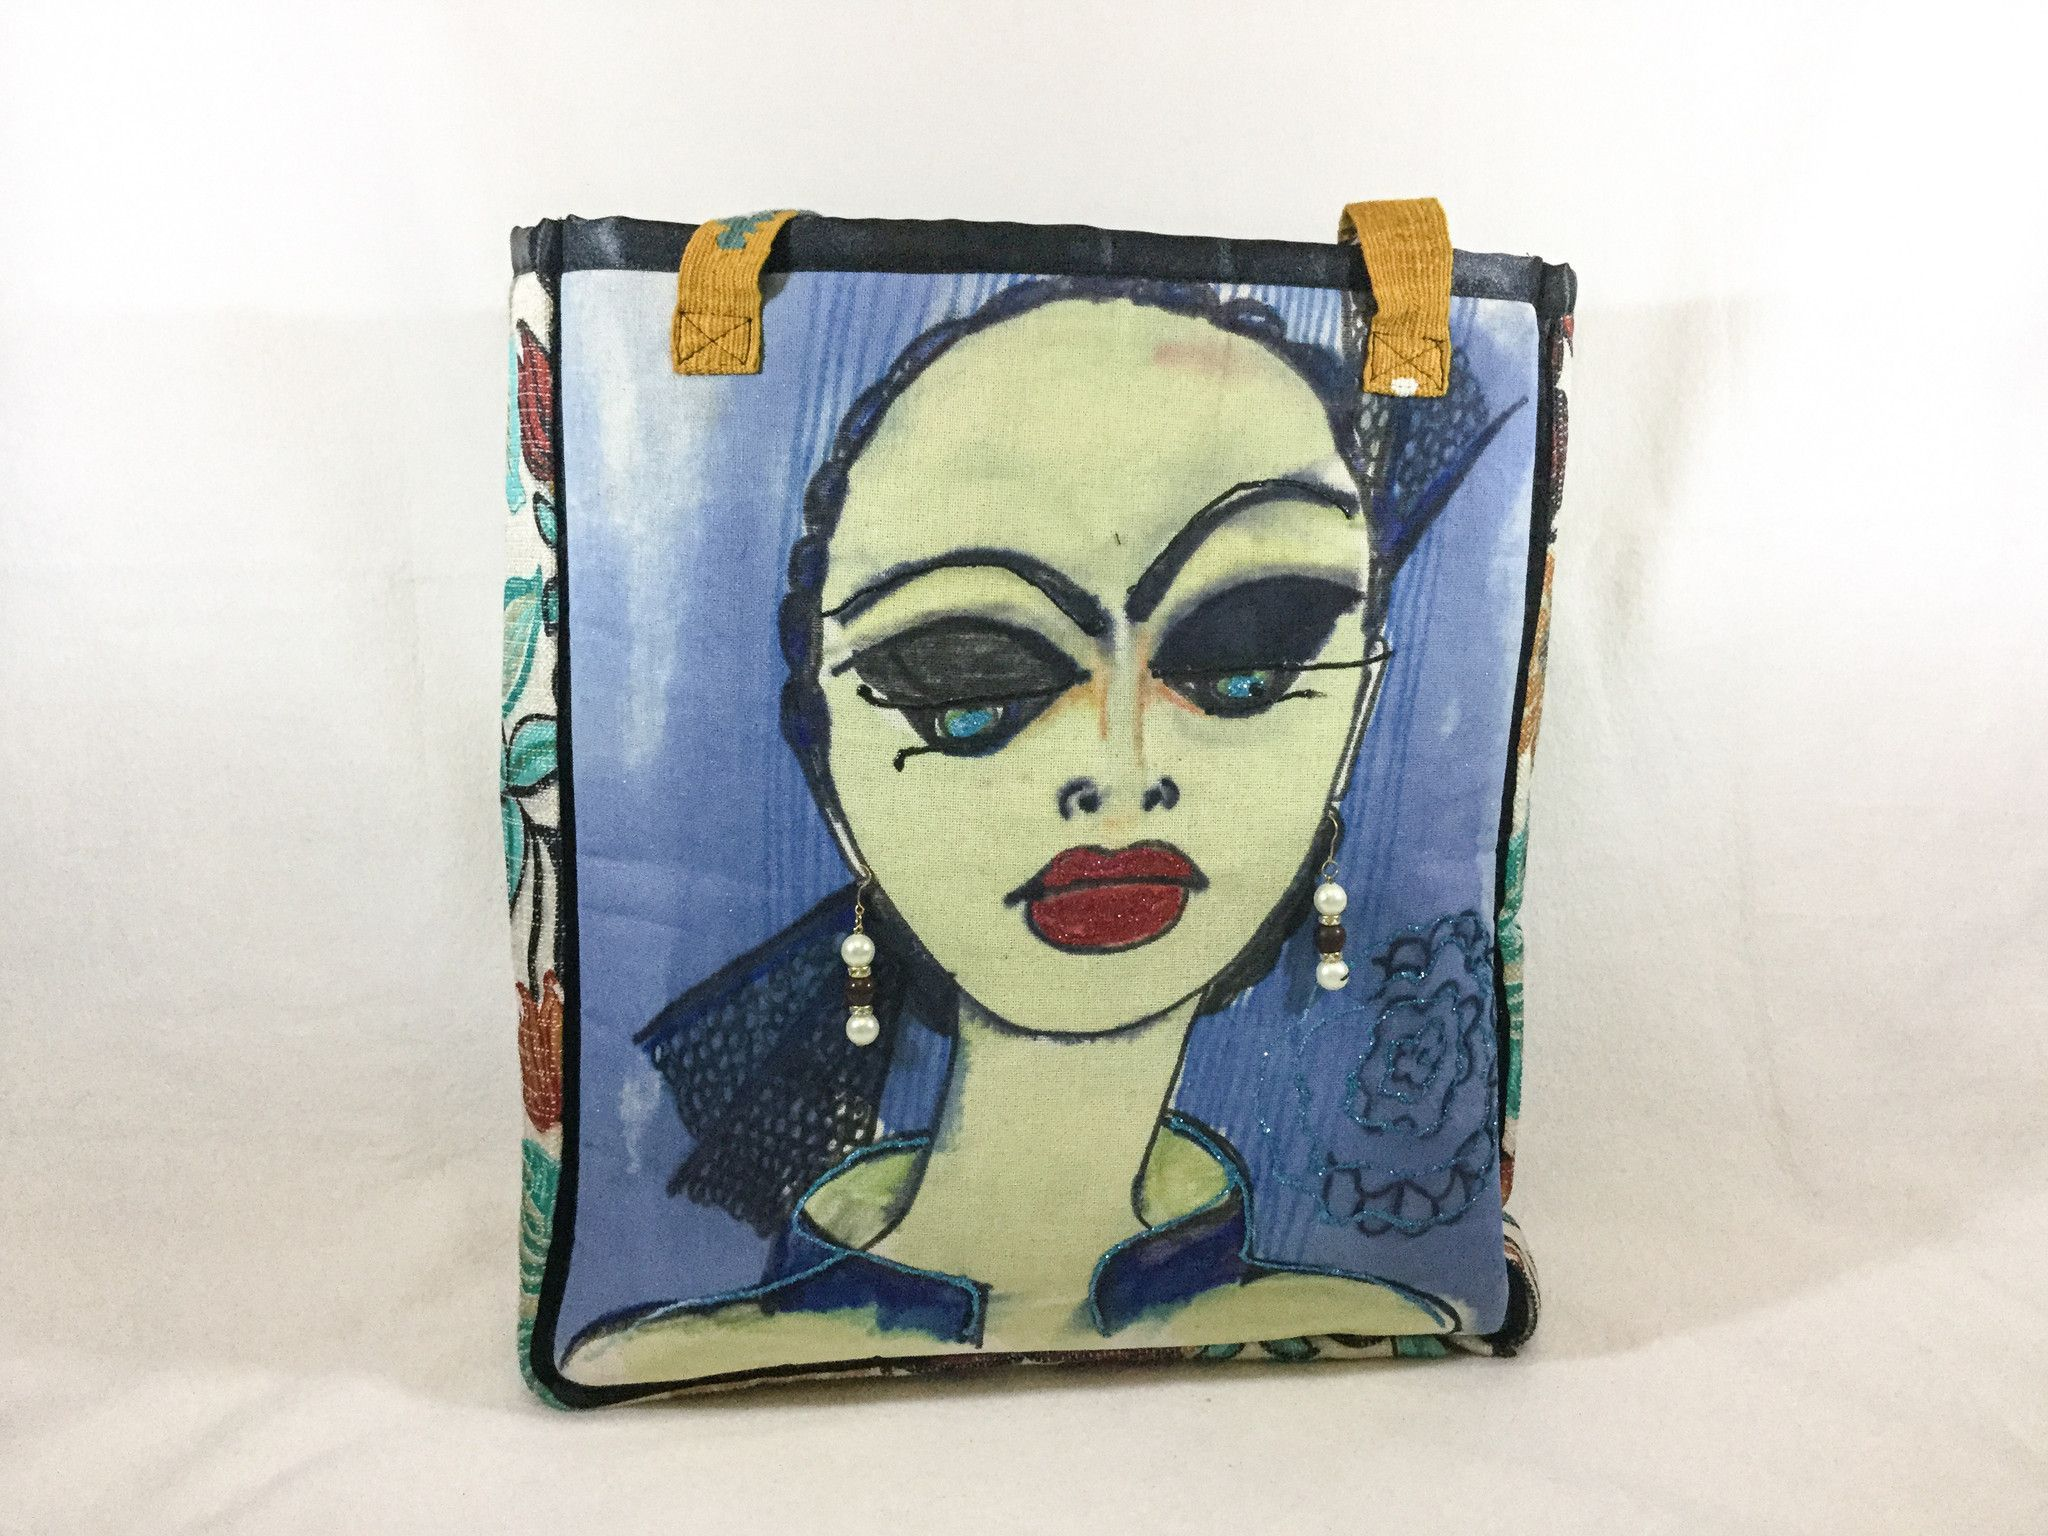 """Melva  So Beautifully Dramatic This bag measures 14"""" wide by 17"""" high by 6"""" deep The image is painted and dyed on linen Melva is wearing faux pearl and purple bead drop earrings The back and sides are a floral tweed-like fabric in teal and orange The inside is lined in a nice stripe print  A 5"""" x 7"""" open side pocket All seams are tailored with pretty black ribbon 9"""" multi-colored woven straps"""